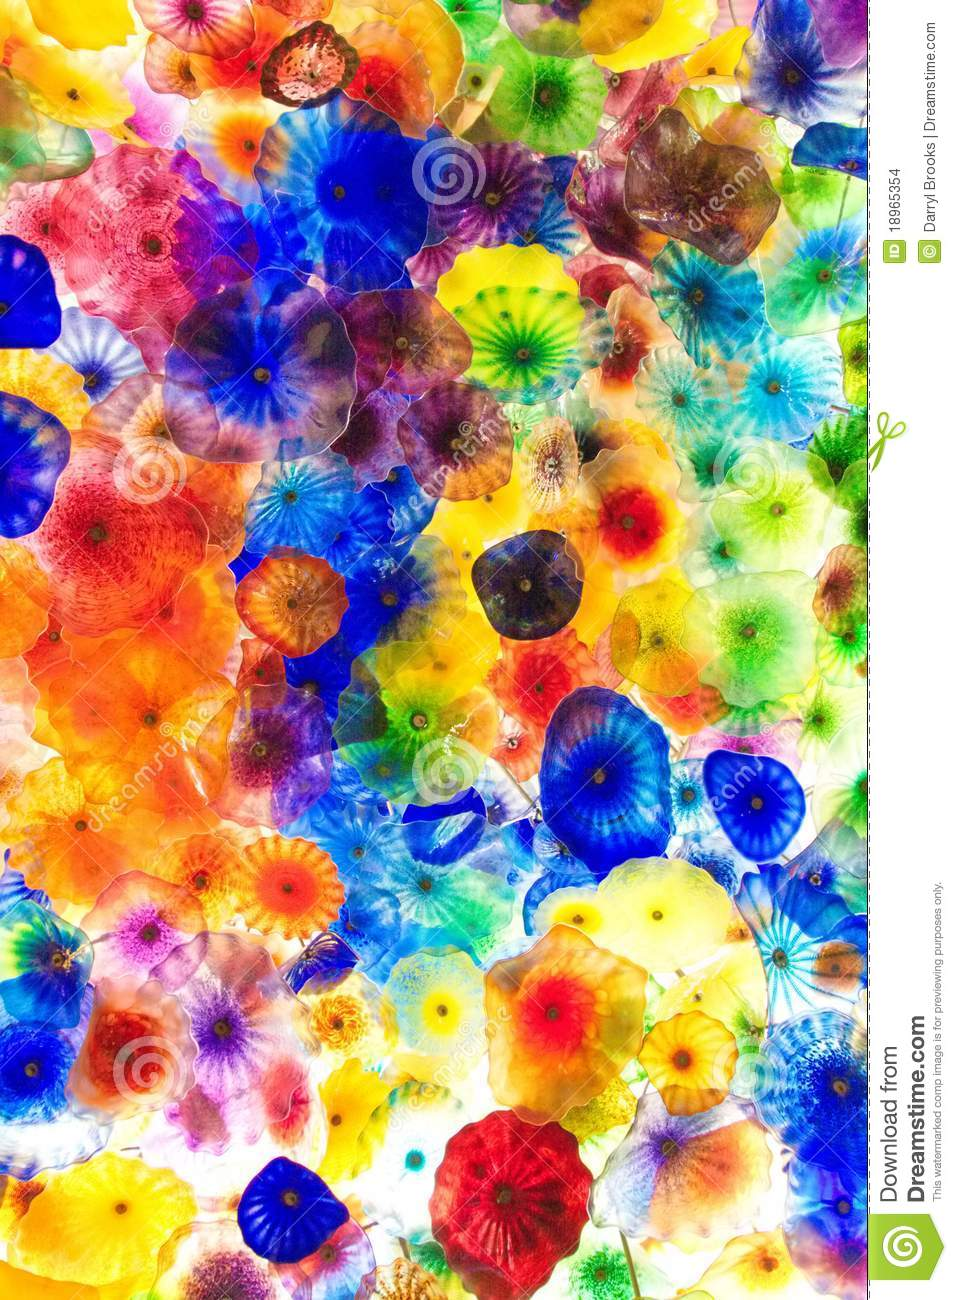 Colorful Patterns Stock Images - Image: 18965354